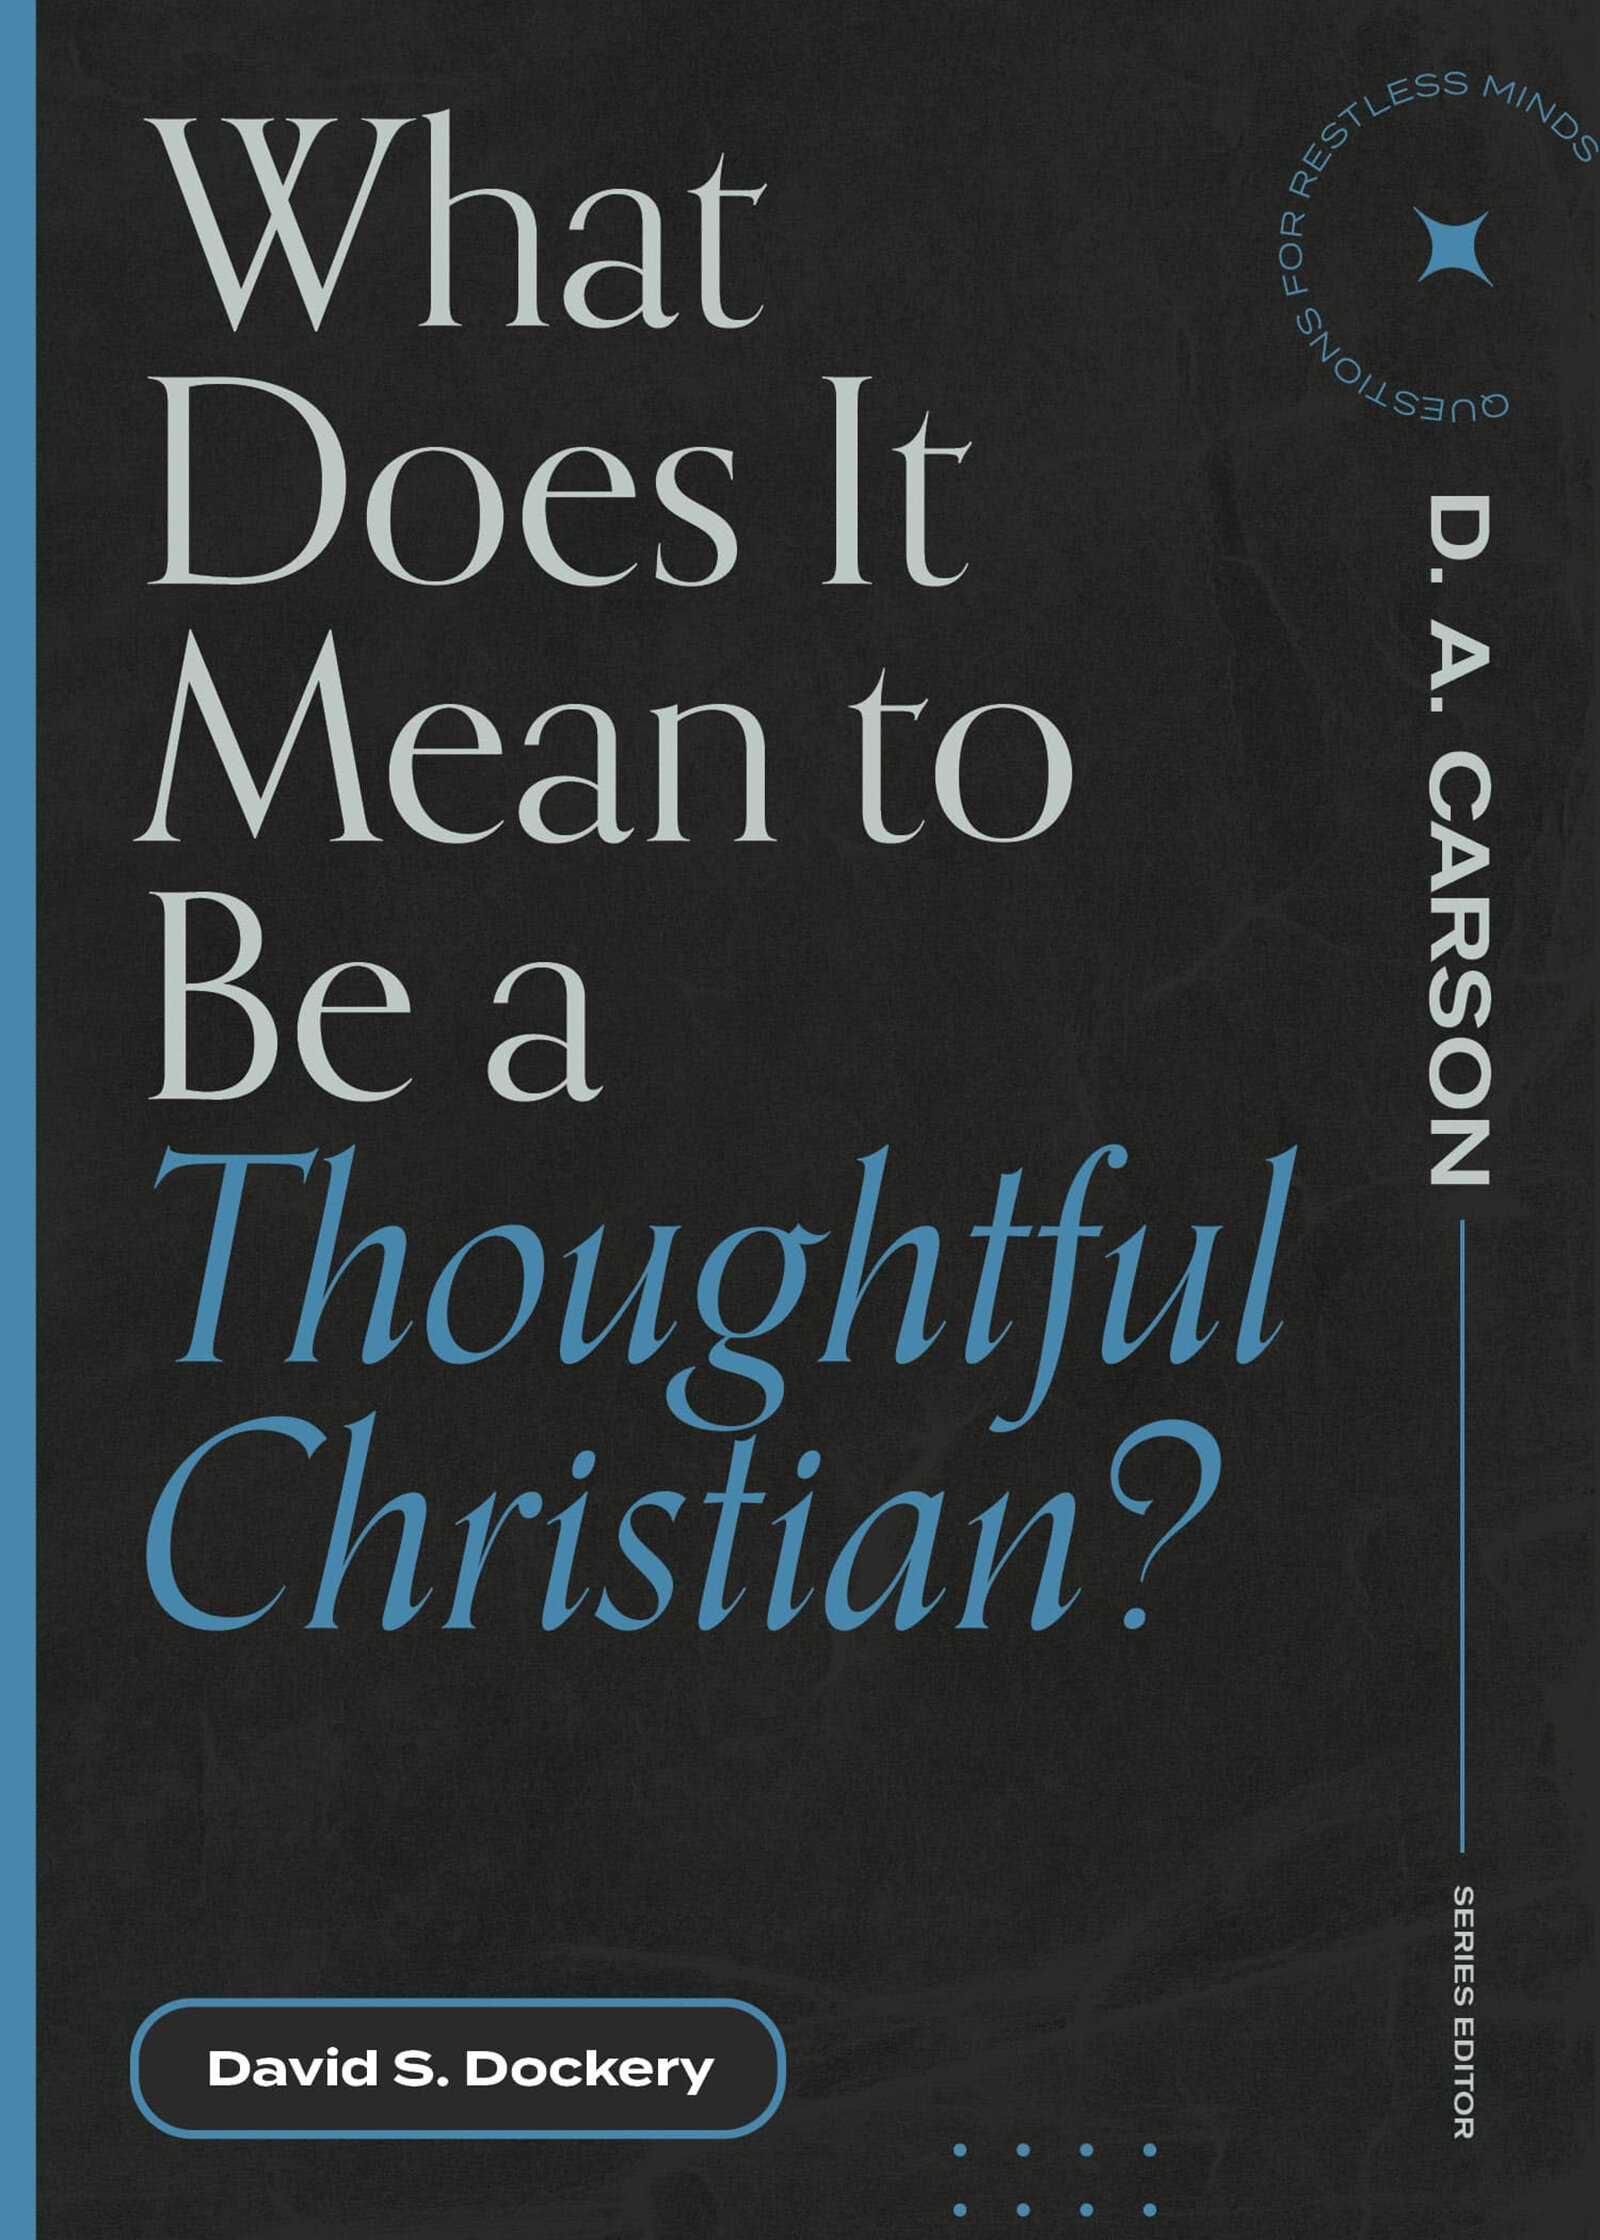 What Does It Mean to Be a Thoughtful Christian?